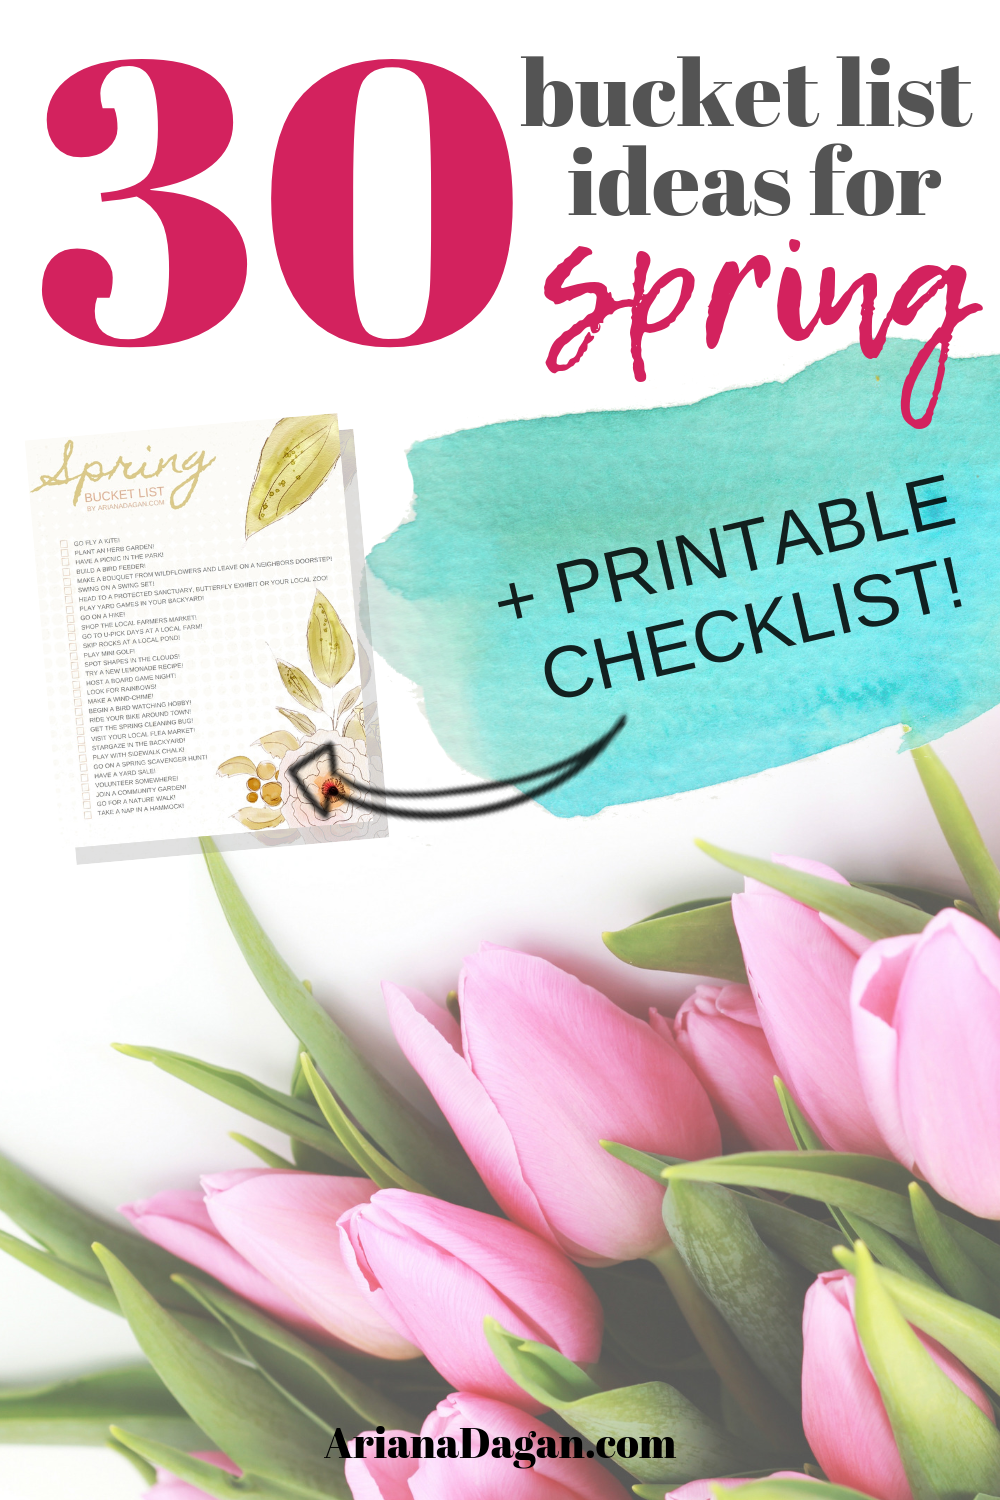 30 Bucket List Ideas for Spring by Ariana Dagan